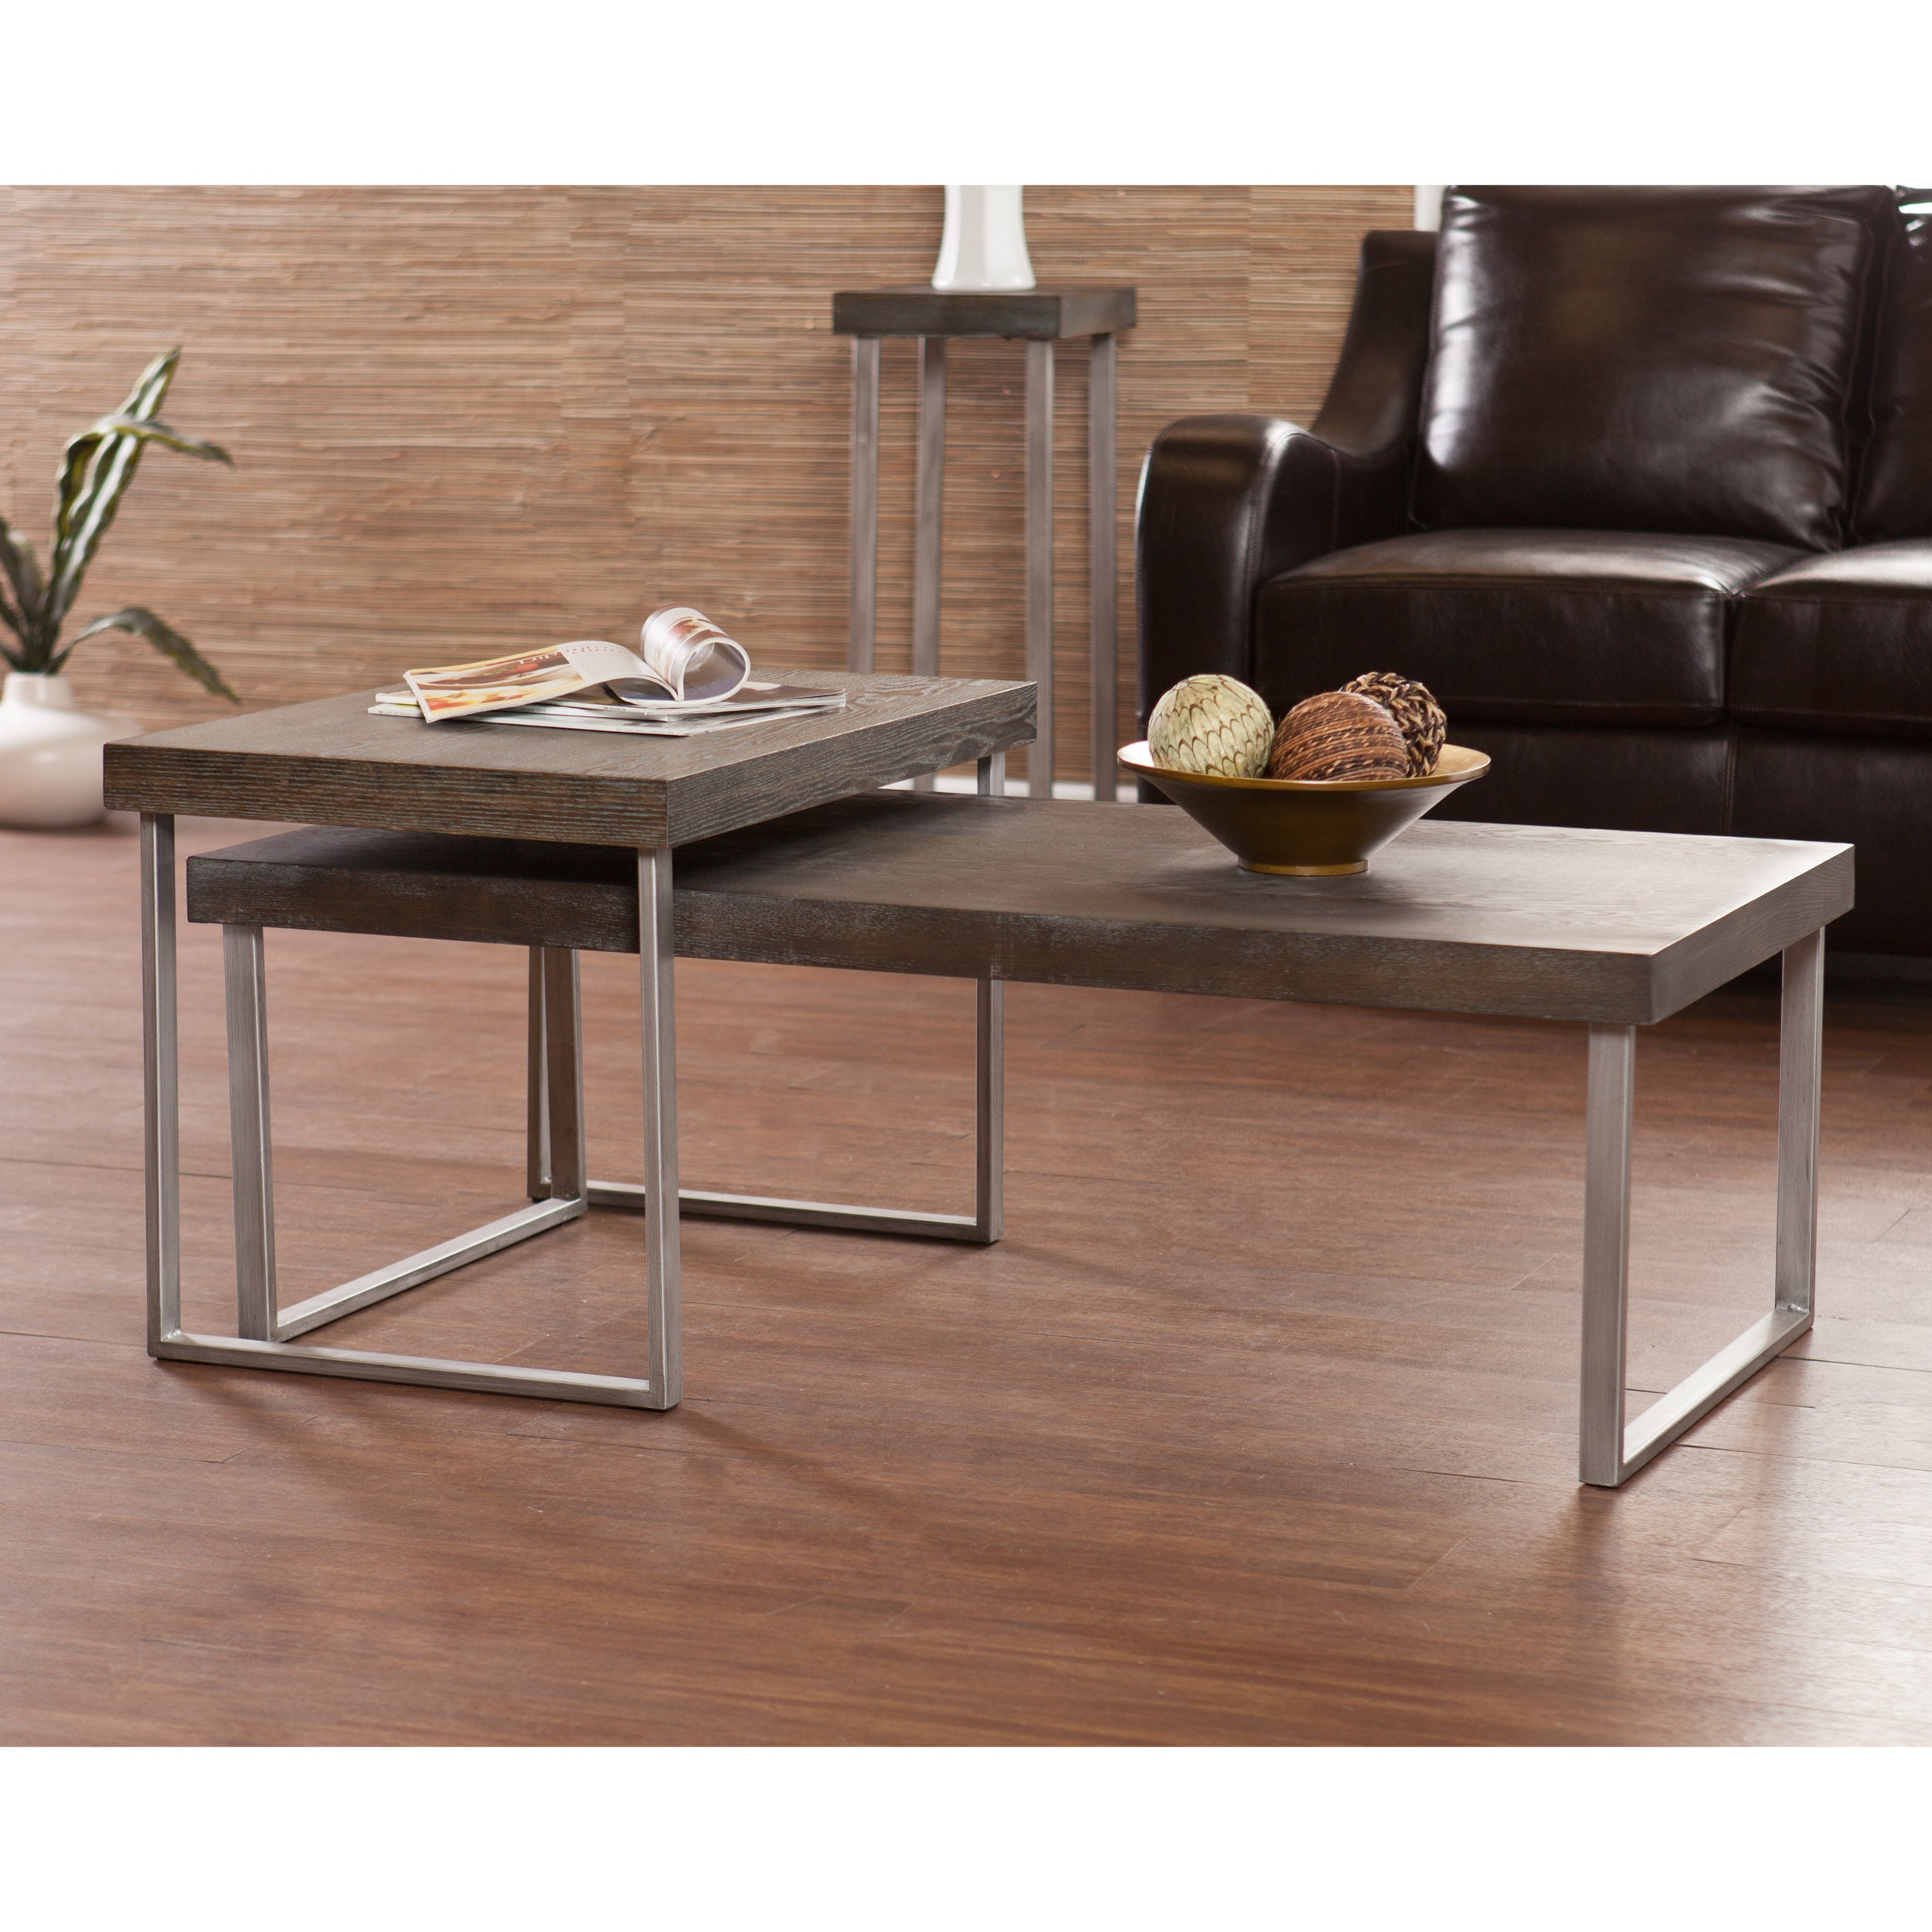 Harper Blvd Lumberton Nesting Cocktail/ Coffee Table 2 pc set  sc 1 st  Overstock.com & Harper Blvd Lumberton Nesting Cocktail/ Coffee Table 2 pc set - Free ...